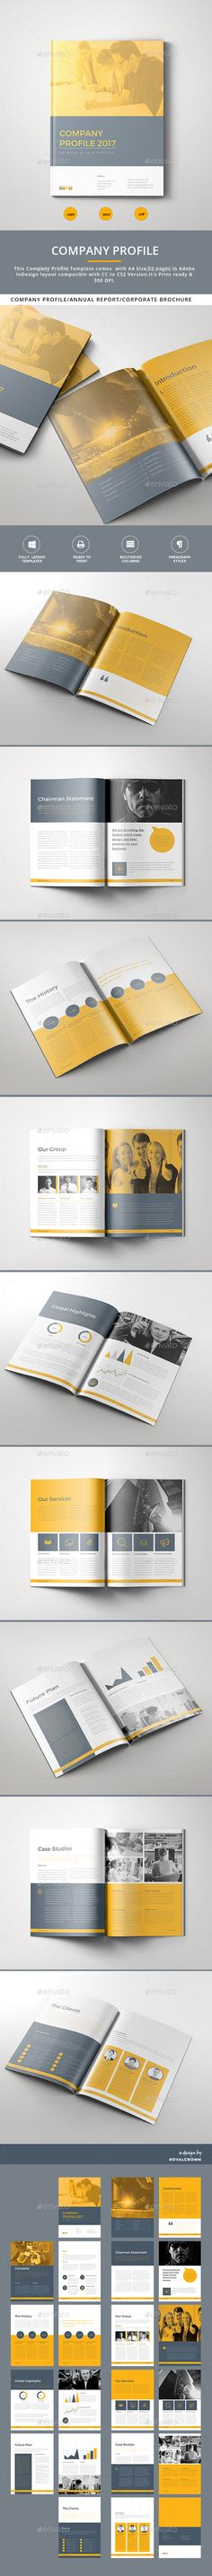 The Company Profile Brochure Template InDesign INDD. Download here: https://graphicriver.net/item/the-company-profile/17037014?ref=ksioks